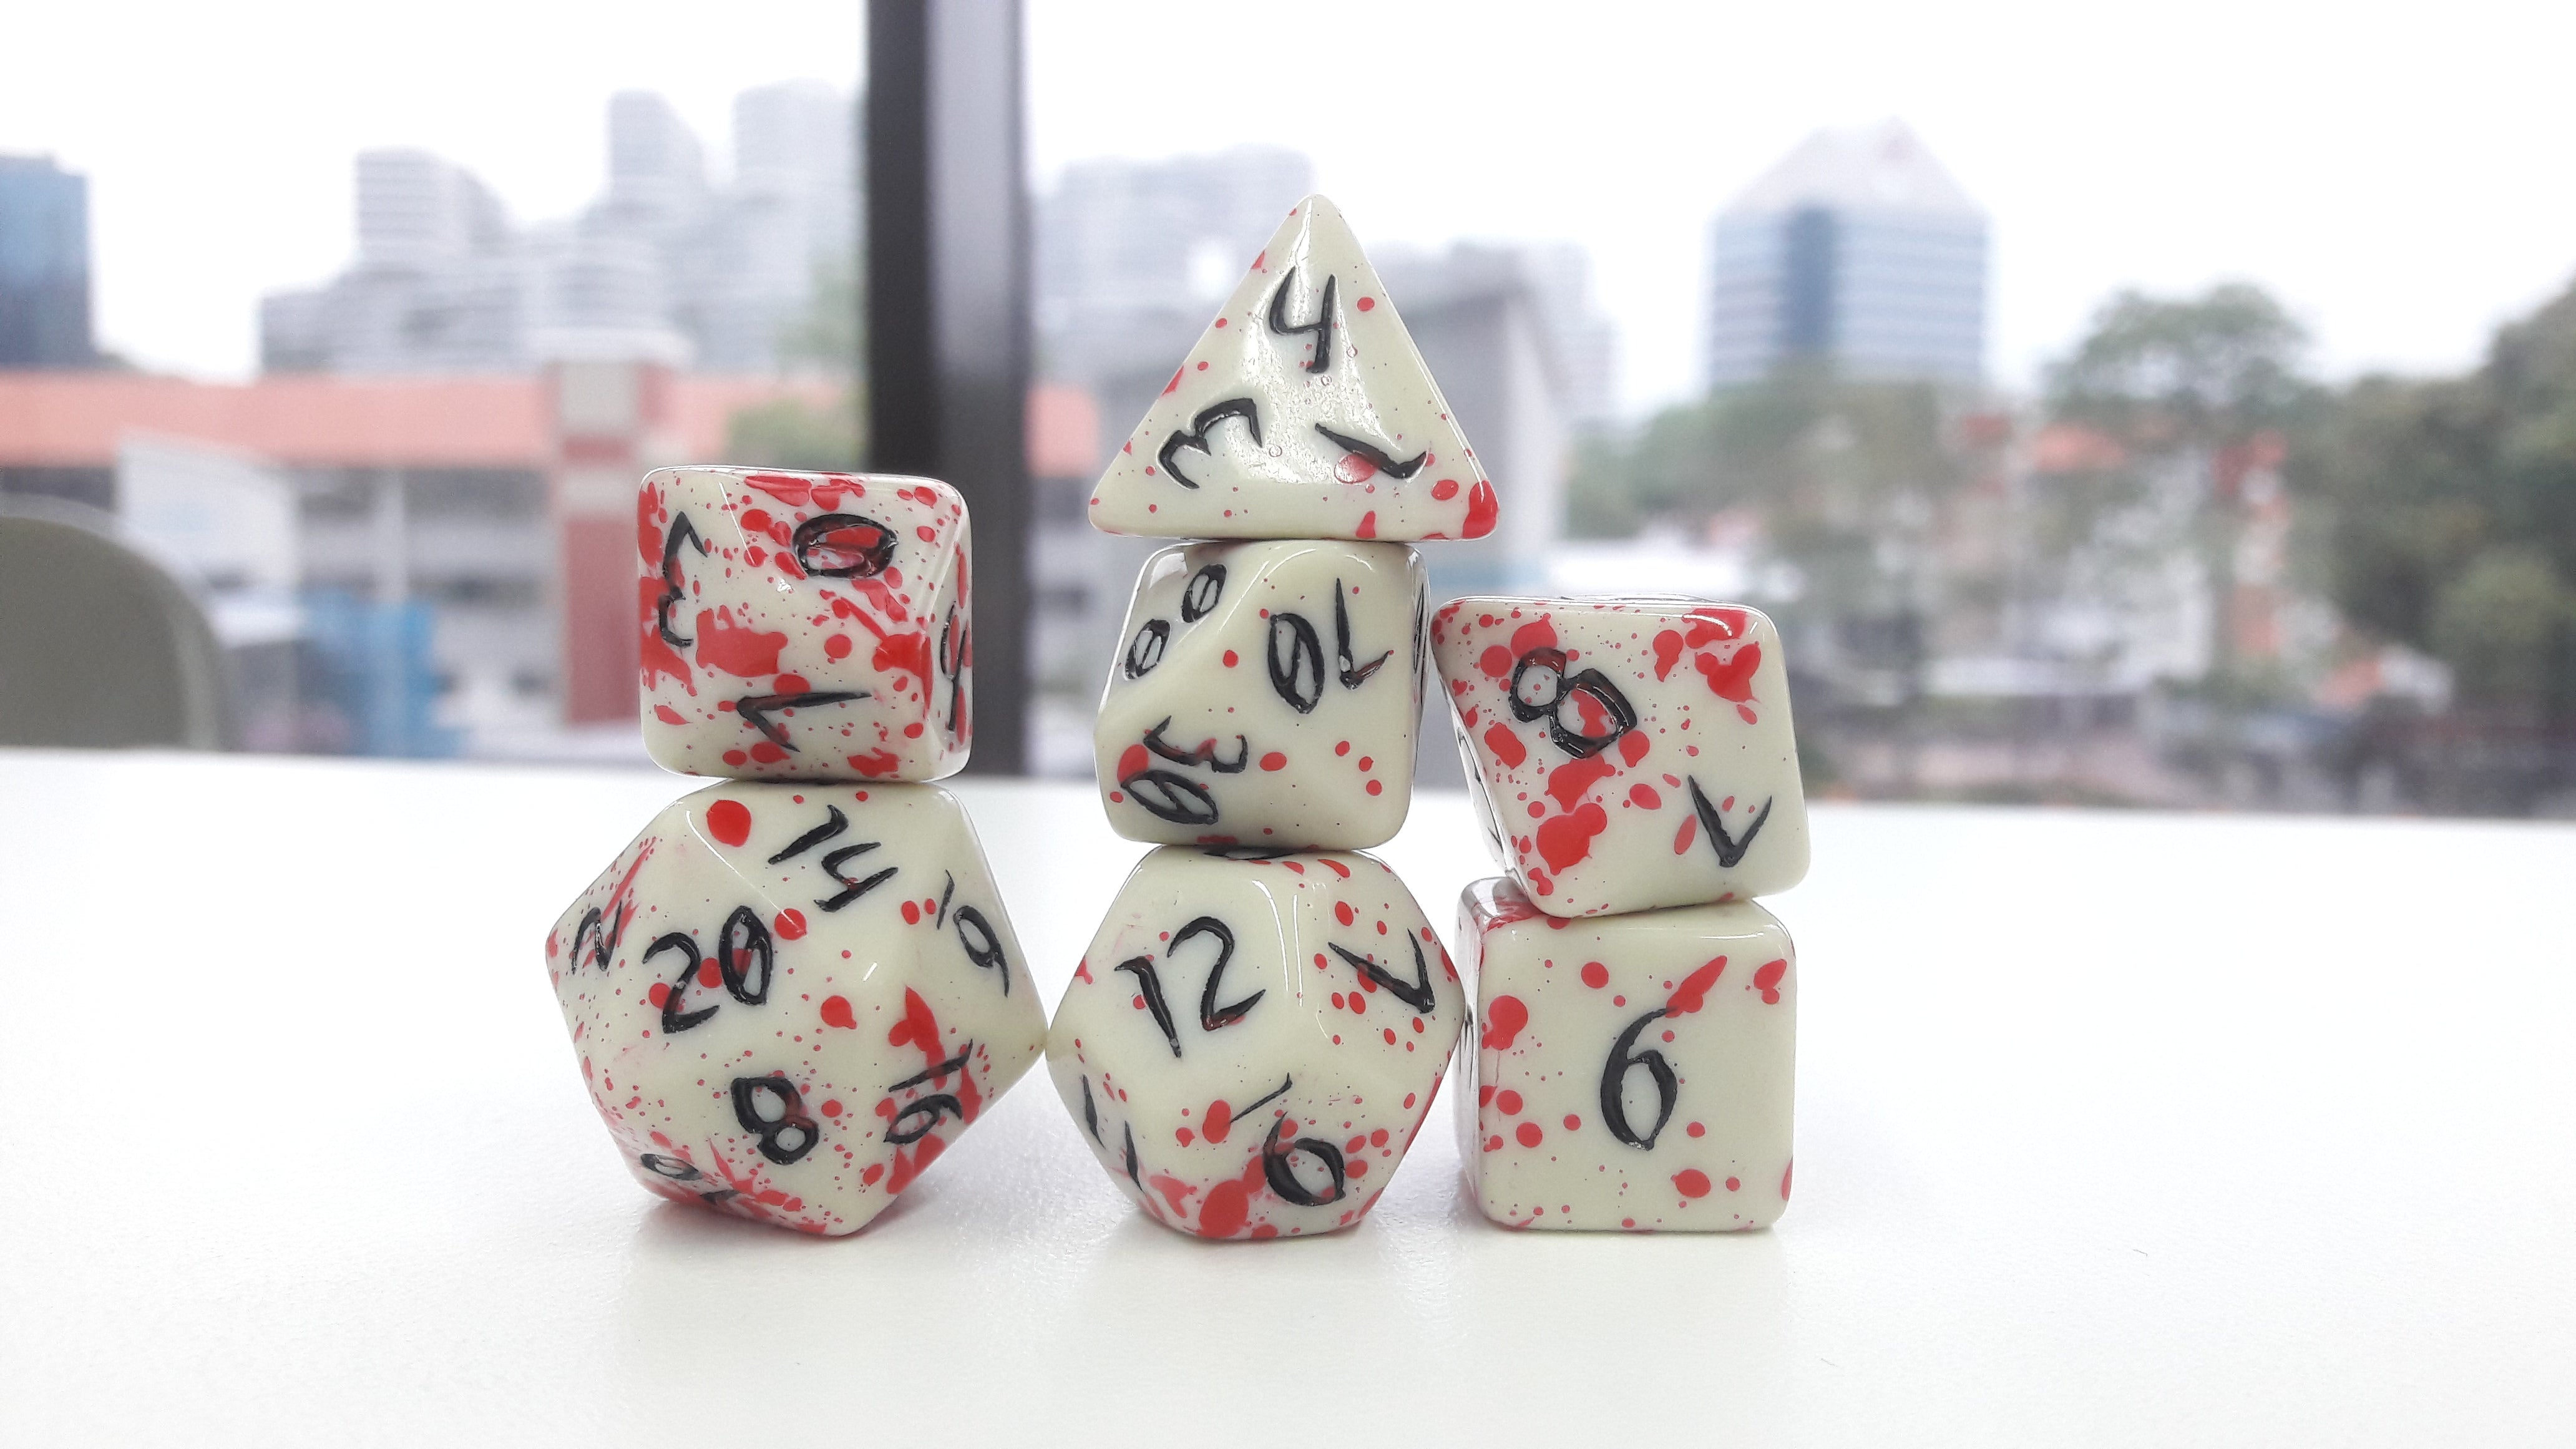 The Red Queen - Primeval: Black and Red with White Ink 7pc Custom Font Polyhedral Dice Set - Kraken Dice | Sunny Pair'O'Dice